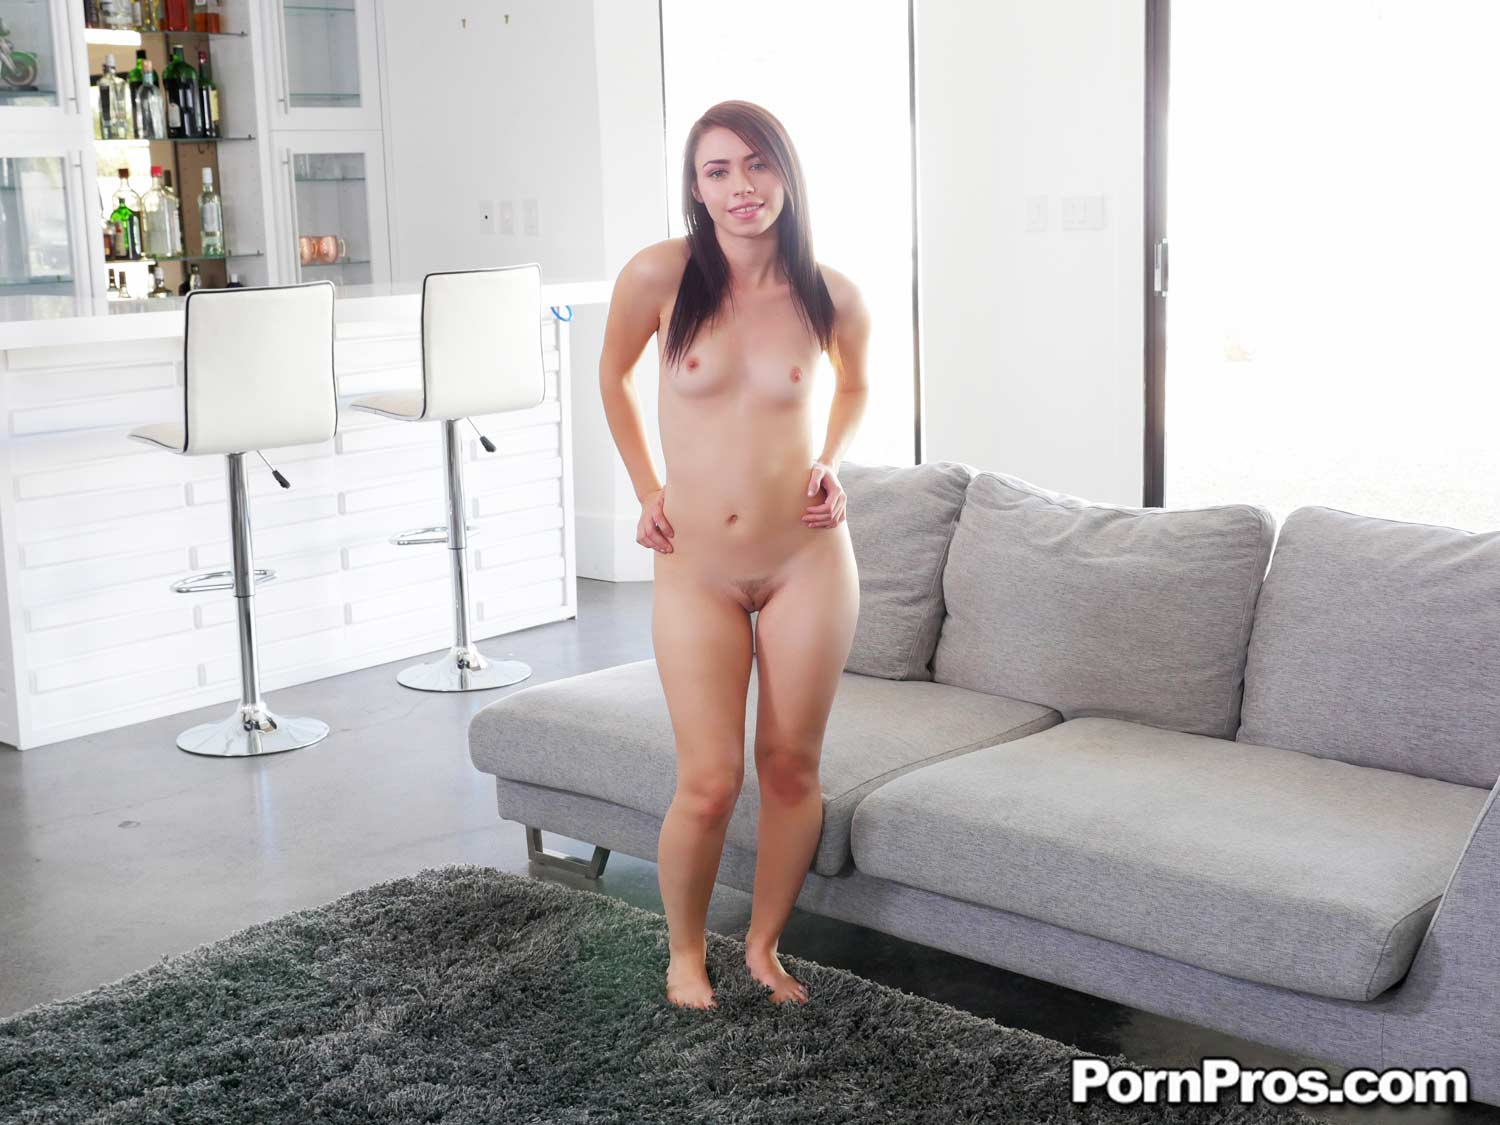 Abuse Me Lucie Cline Porno lucie cline squirt . nude photos. comments: 2